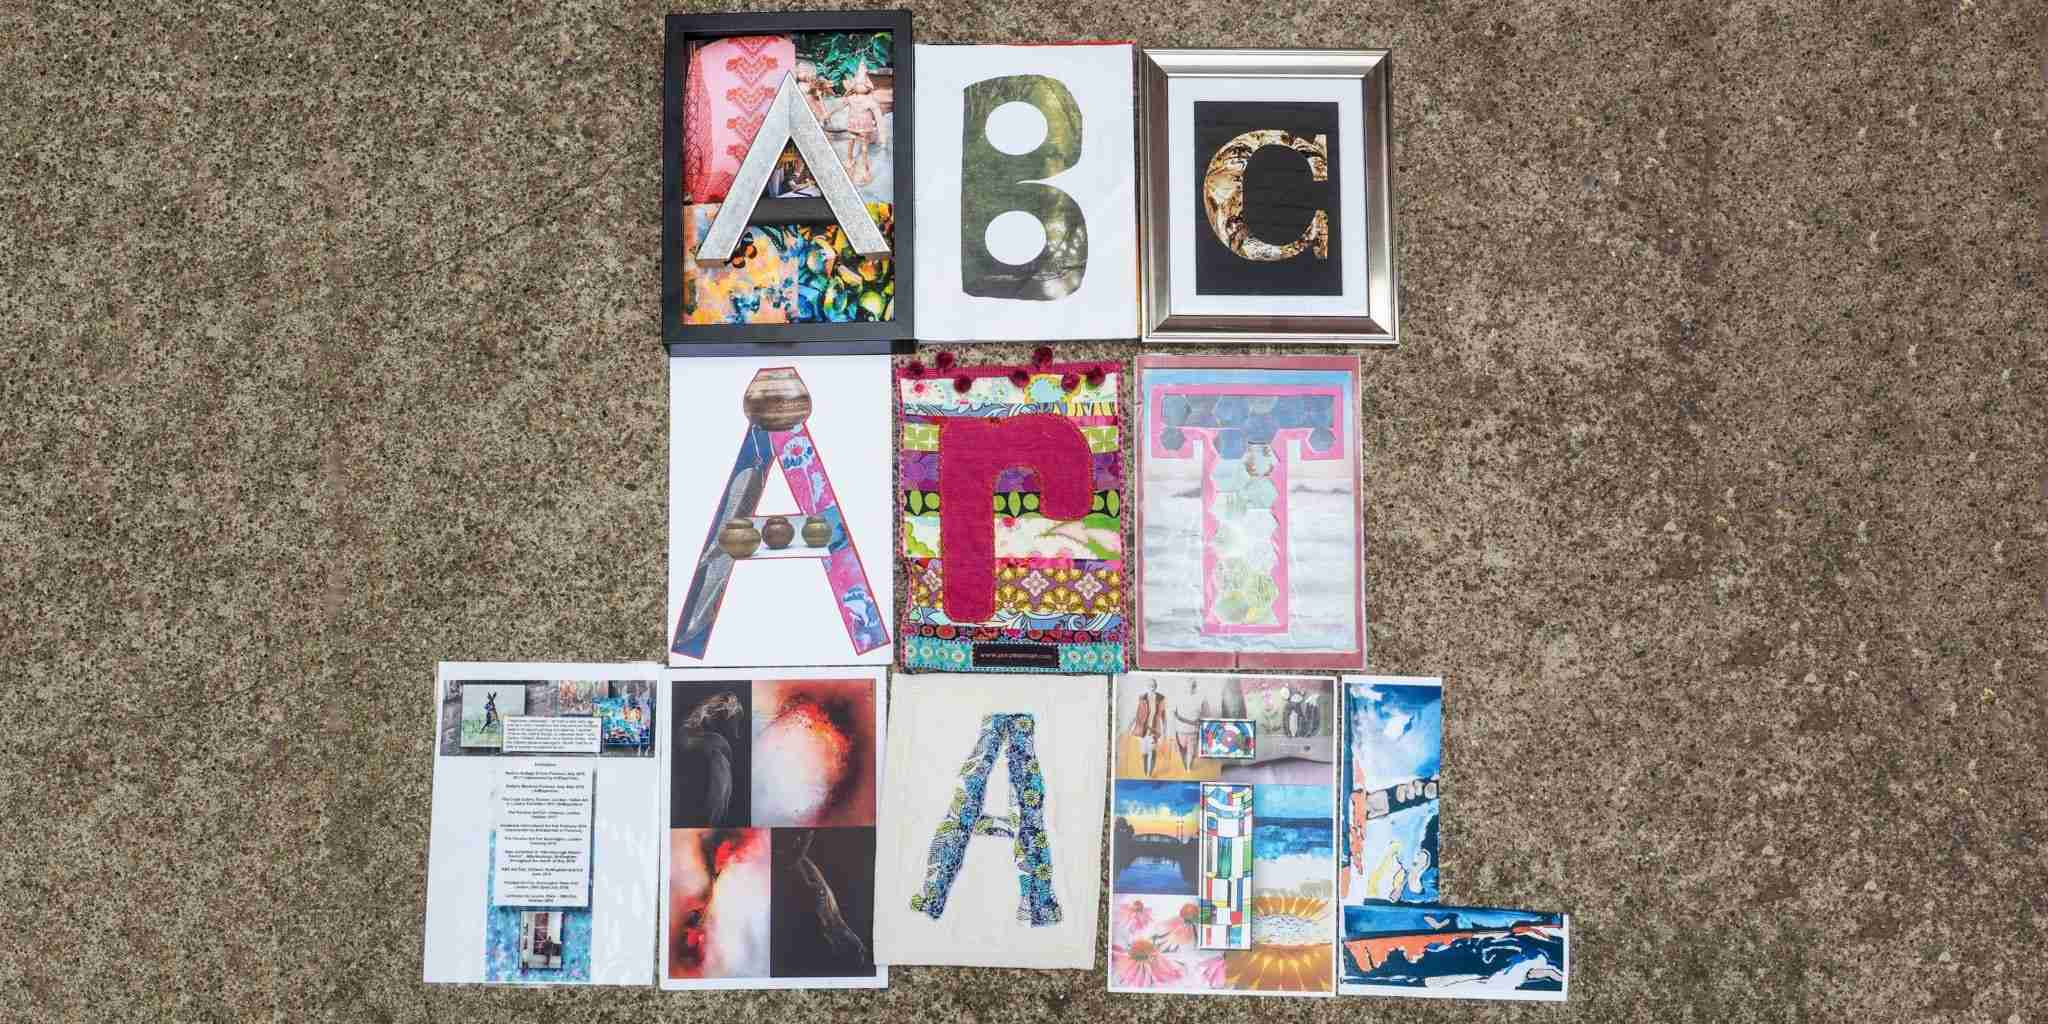 Creative Beeston: ABC Arts Trail